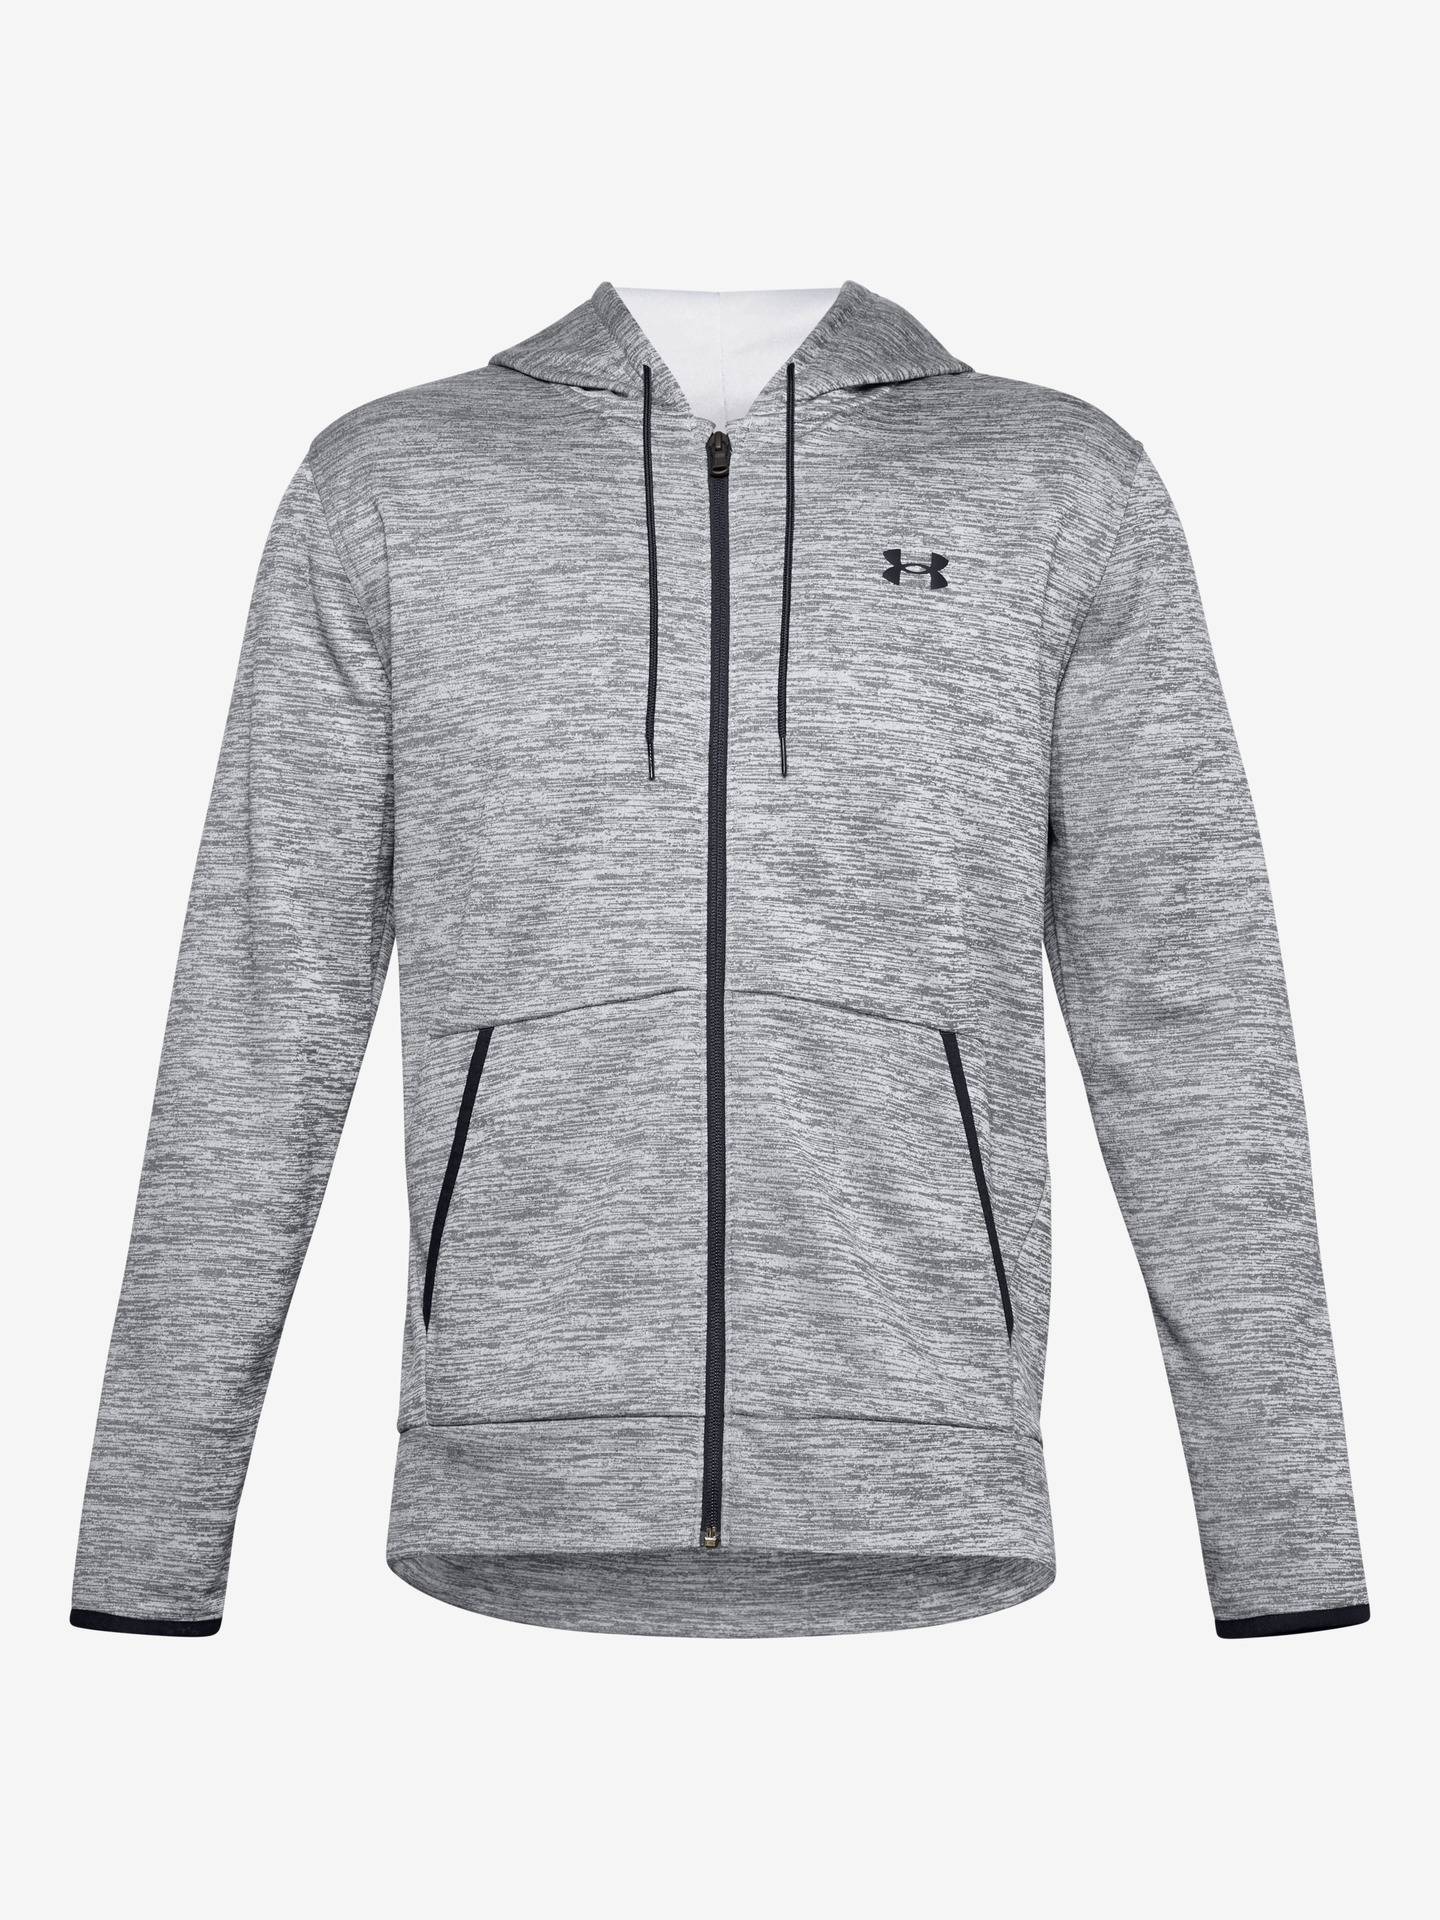 Armour Fleece Mikina Under Armour Šedá